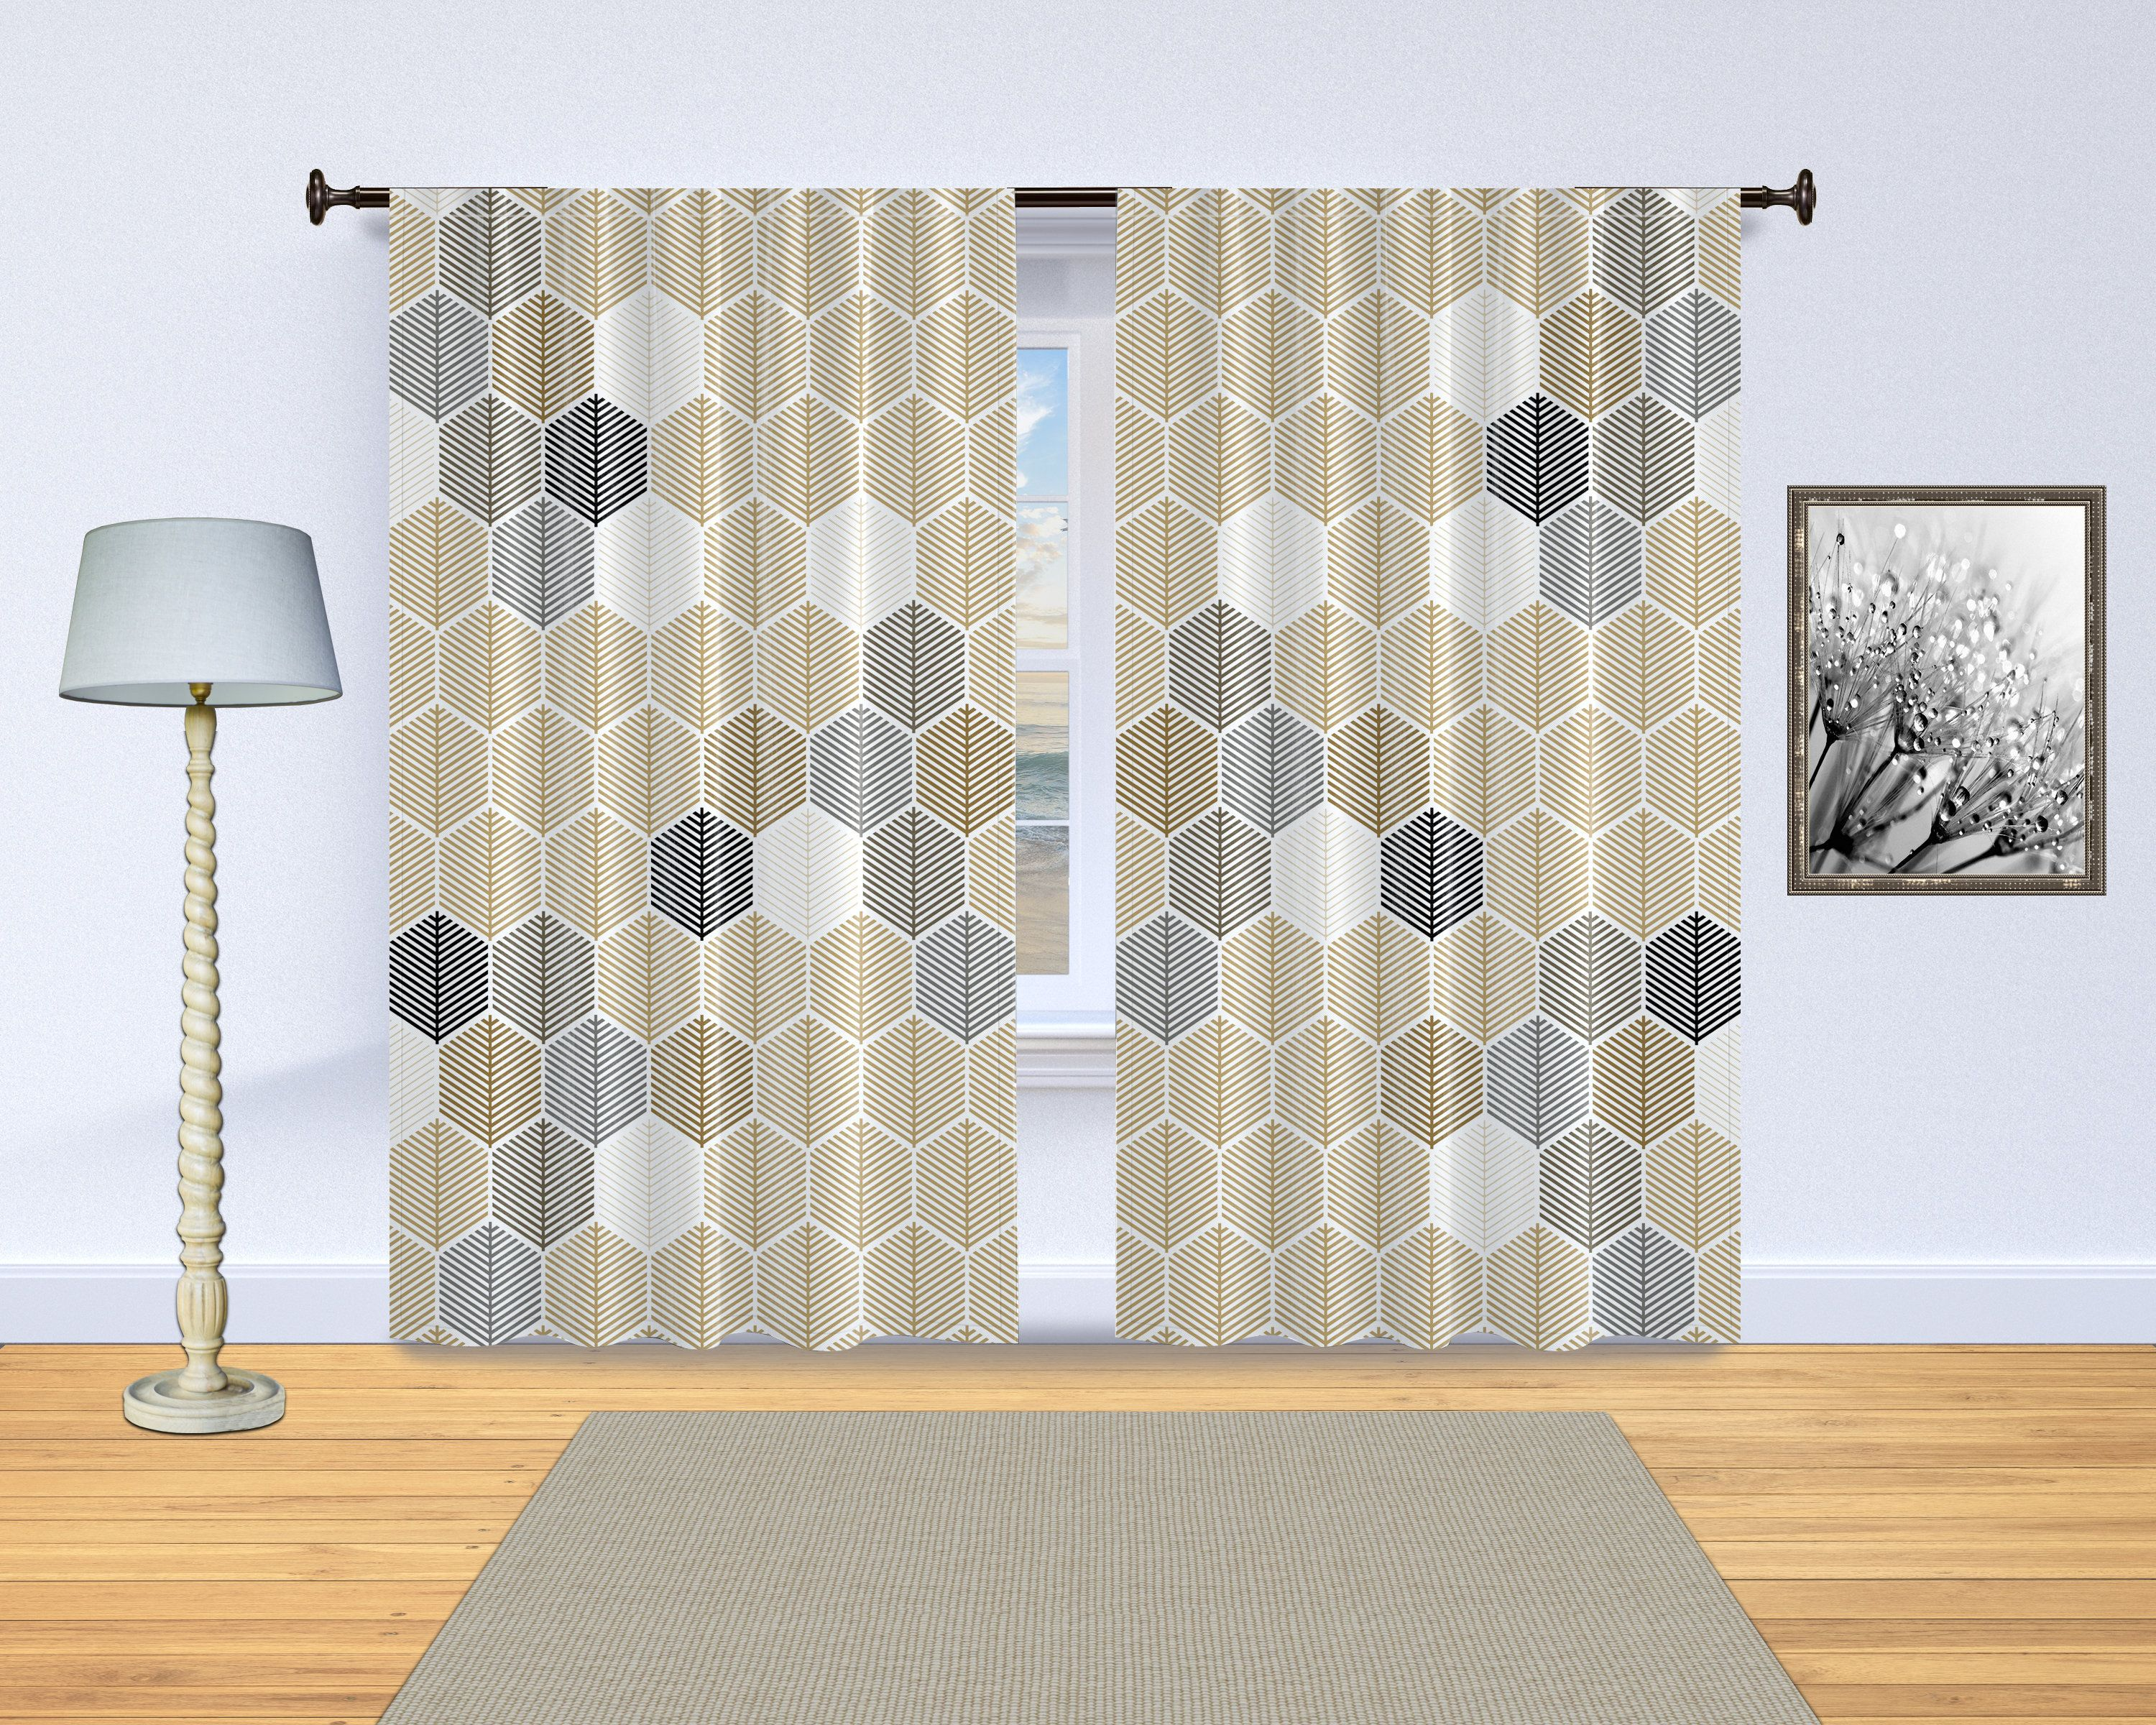 Hexagon geometric curtains. Neutral abstract leaf pattern. Beige, brown, gray, black and white. One or two 50